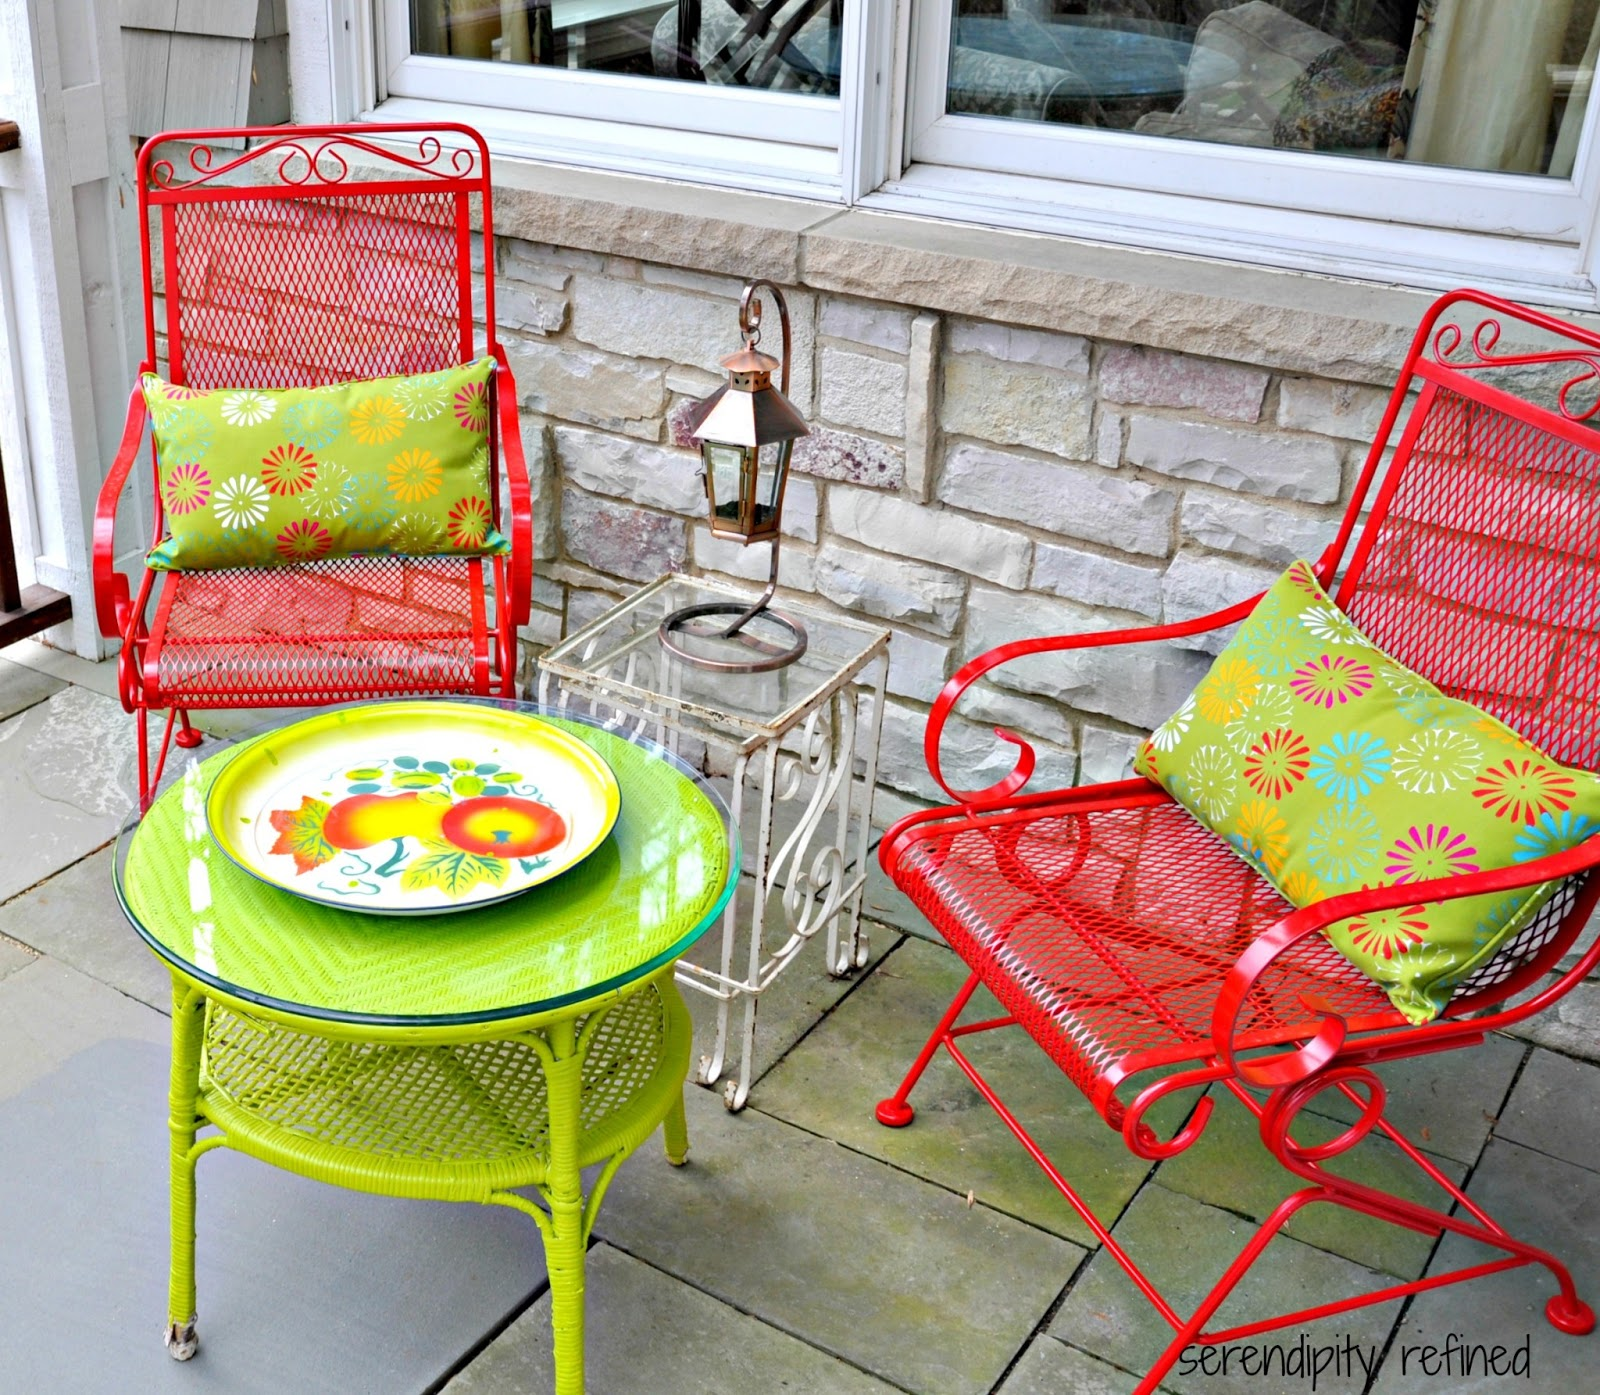 Colored Furniture serendipity refined blog: wicker and wrought iron patio furniture